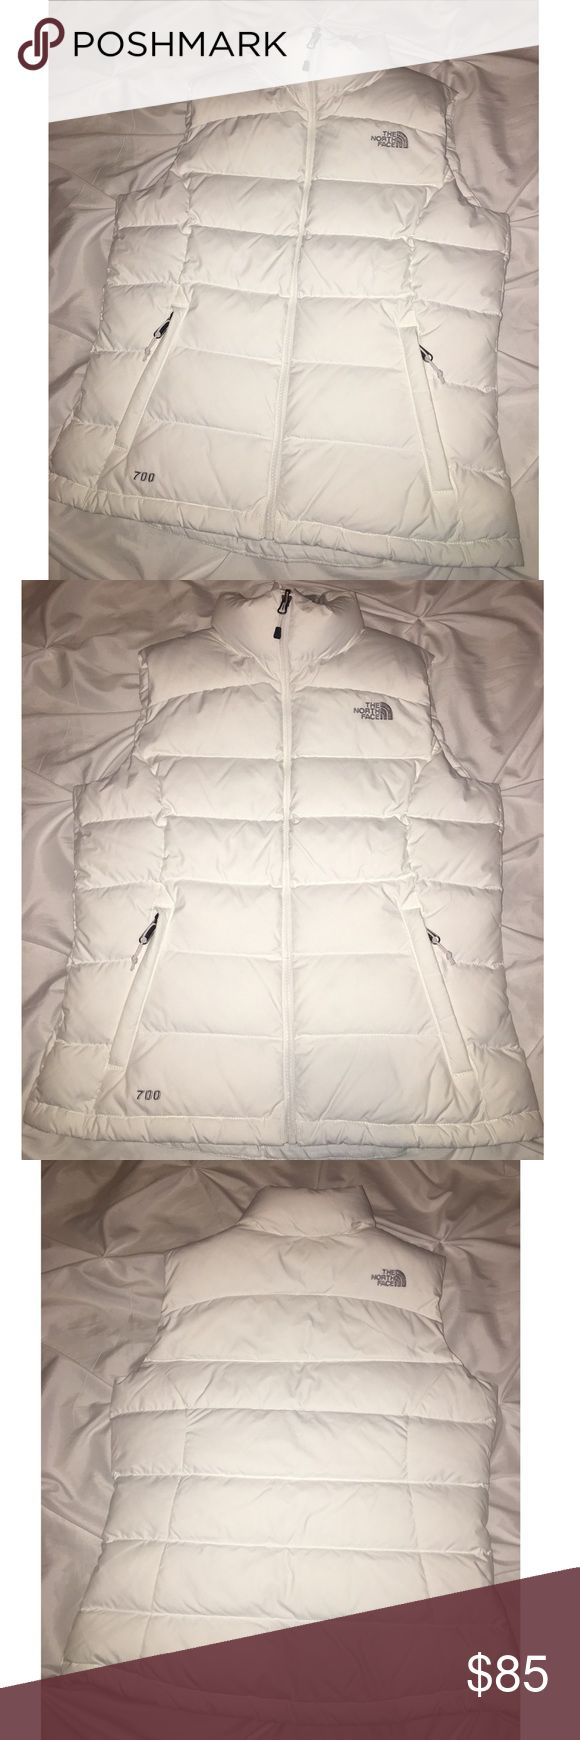 North Face Down Puffer Vest Brand: The North Face Size: M Material: Down  Color: Arctic White Condition: NWOT The North Face Jackets & Coats Vests